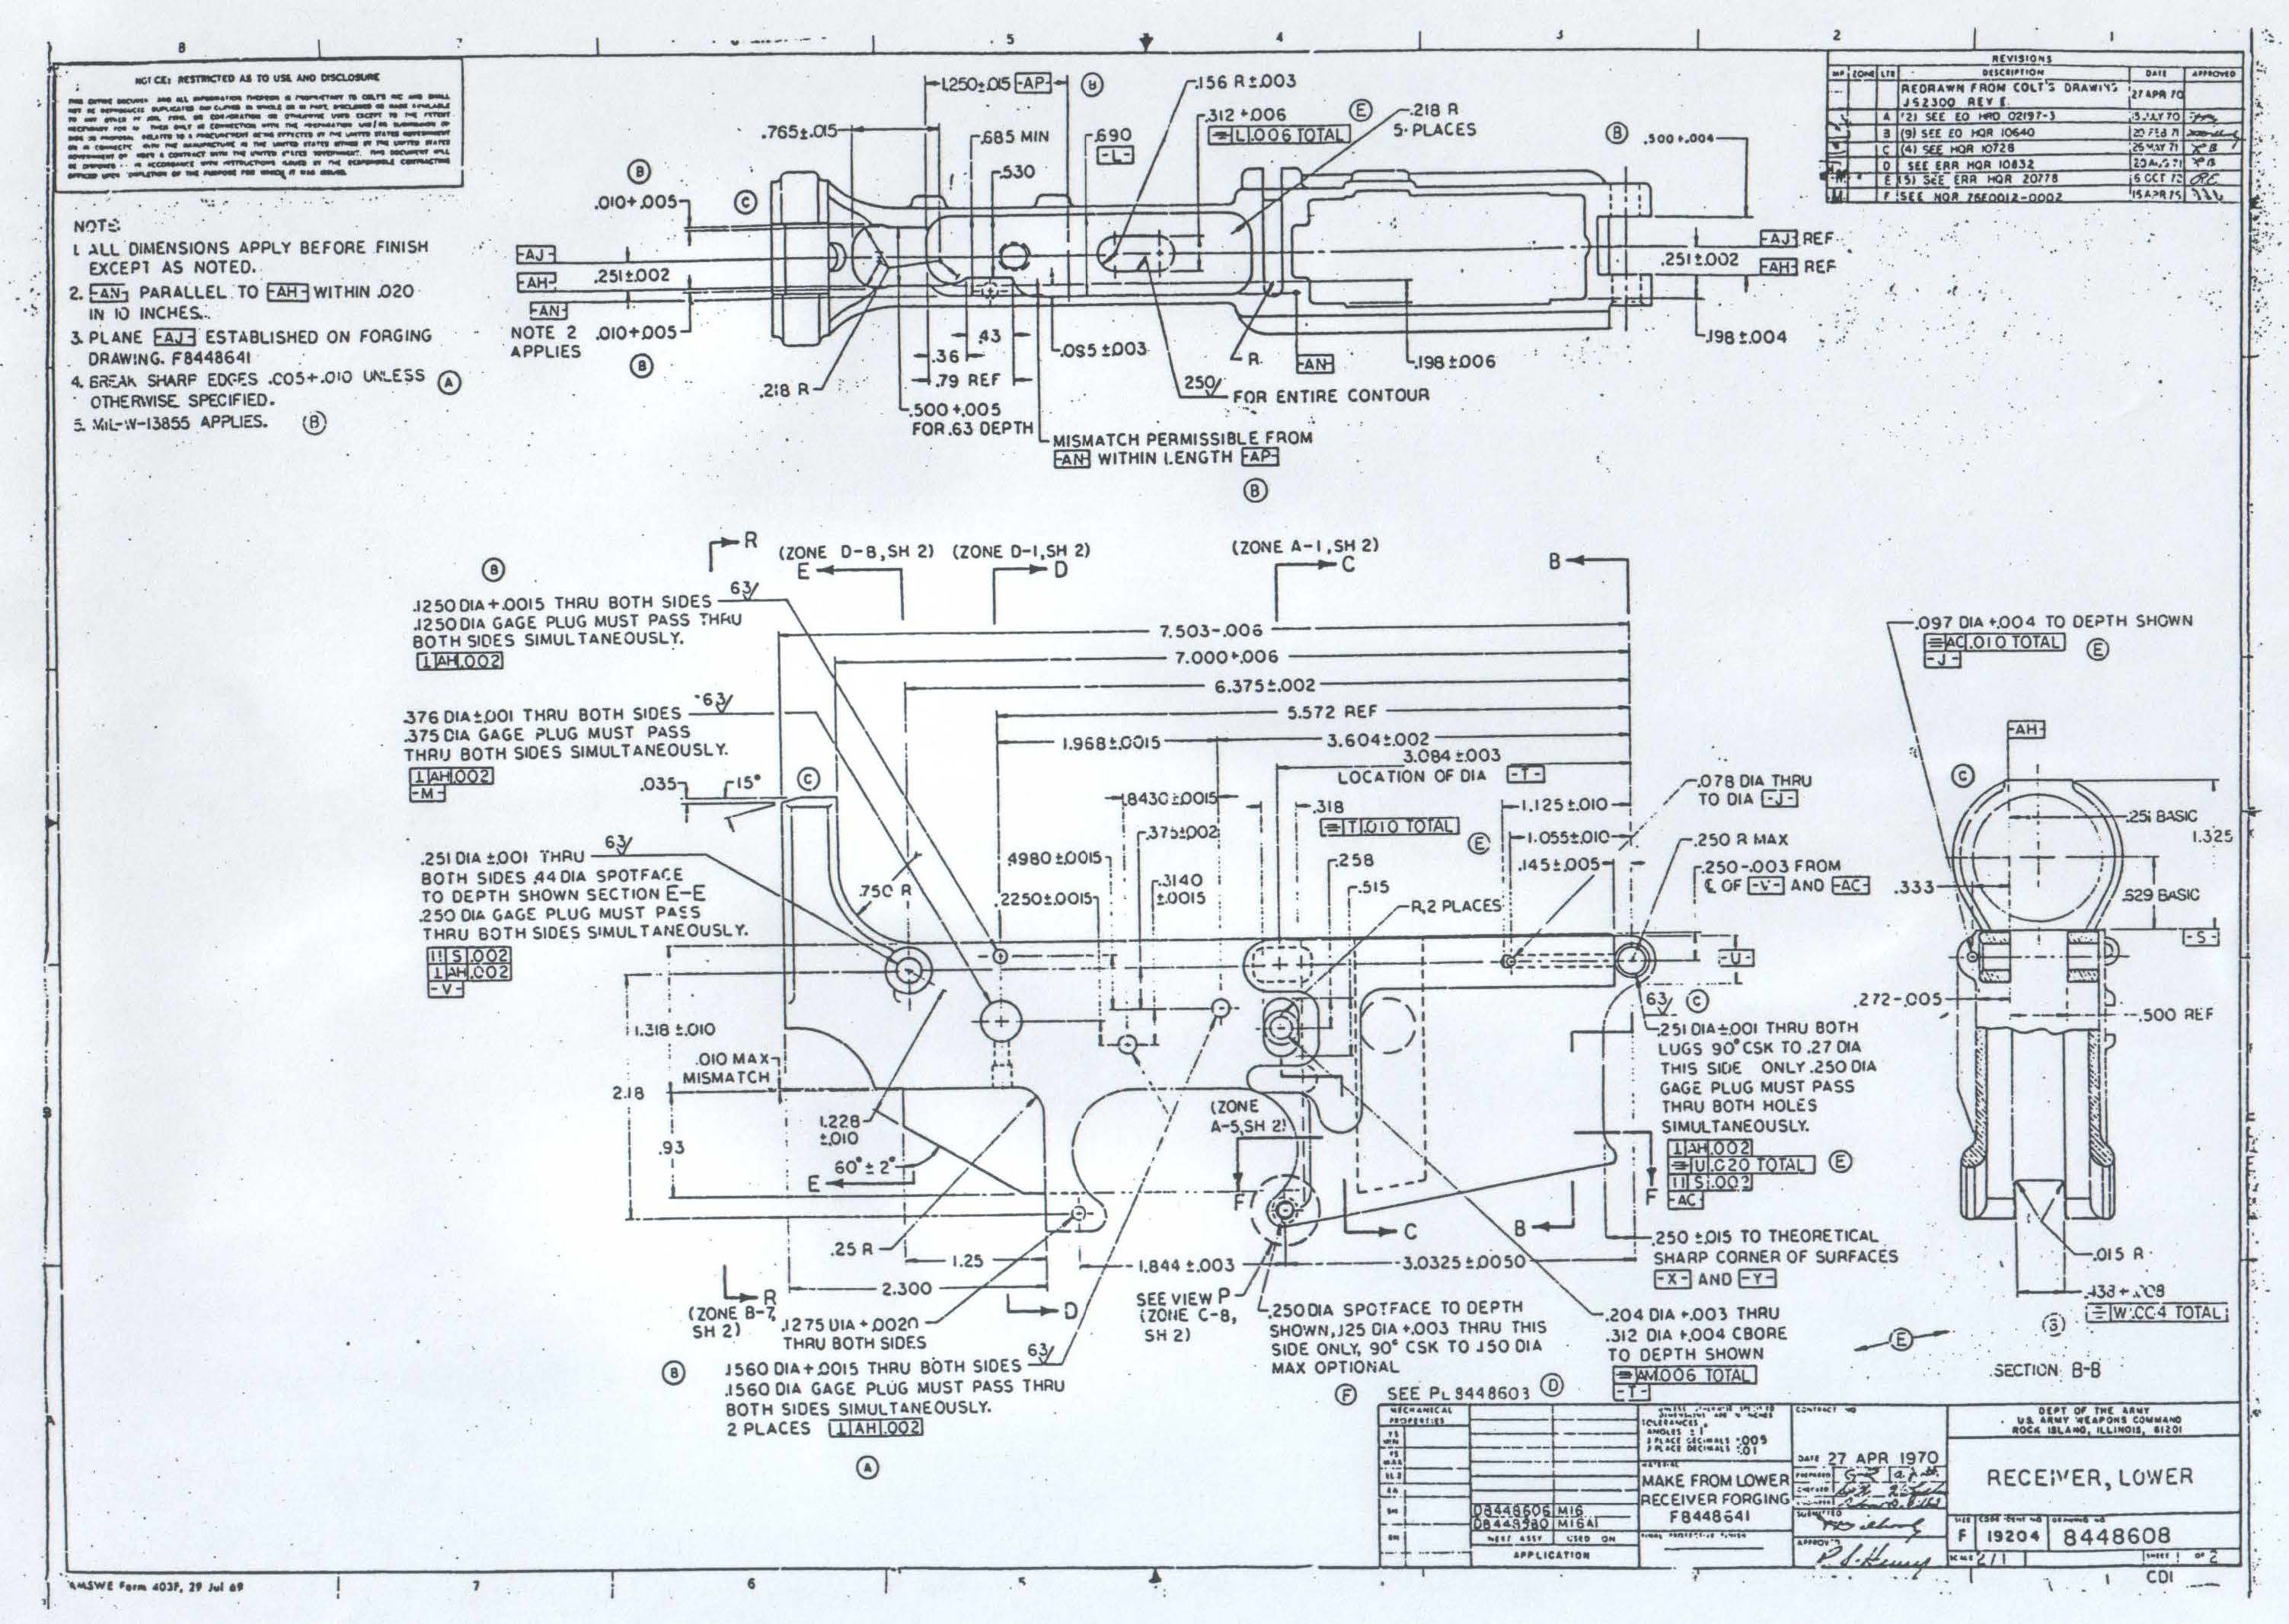 Original army ordinance department blueprints for the ar 15 lower original army ordinance department blueprints for the ar 15 lower reciever malvernweather Choice Image